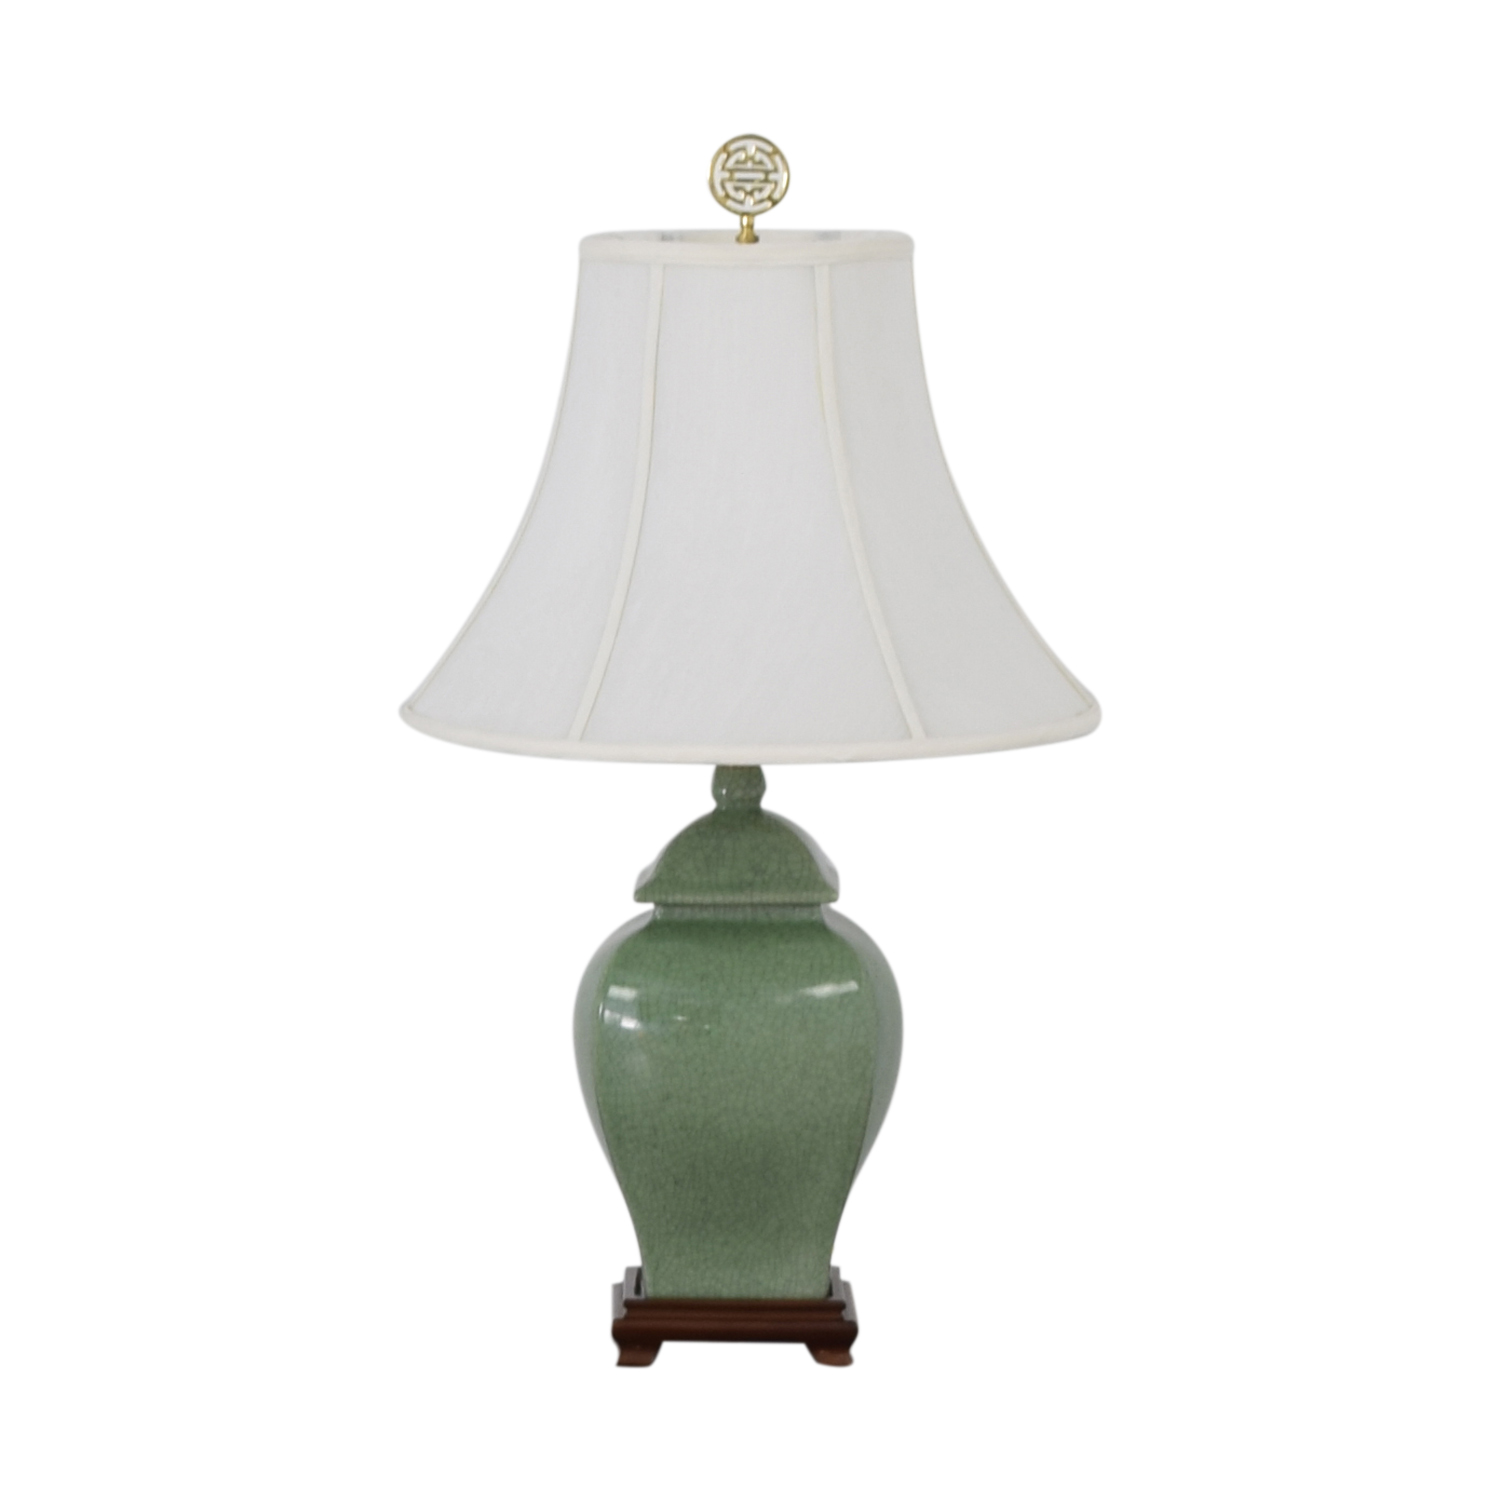 Green Ceramic Lamp dimensions